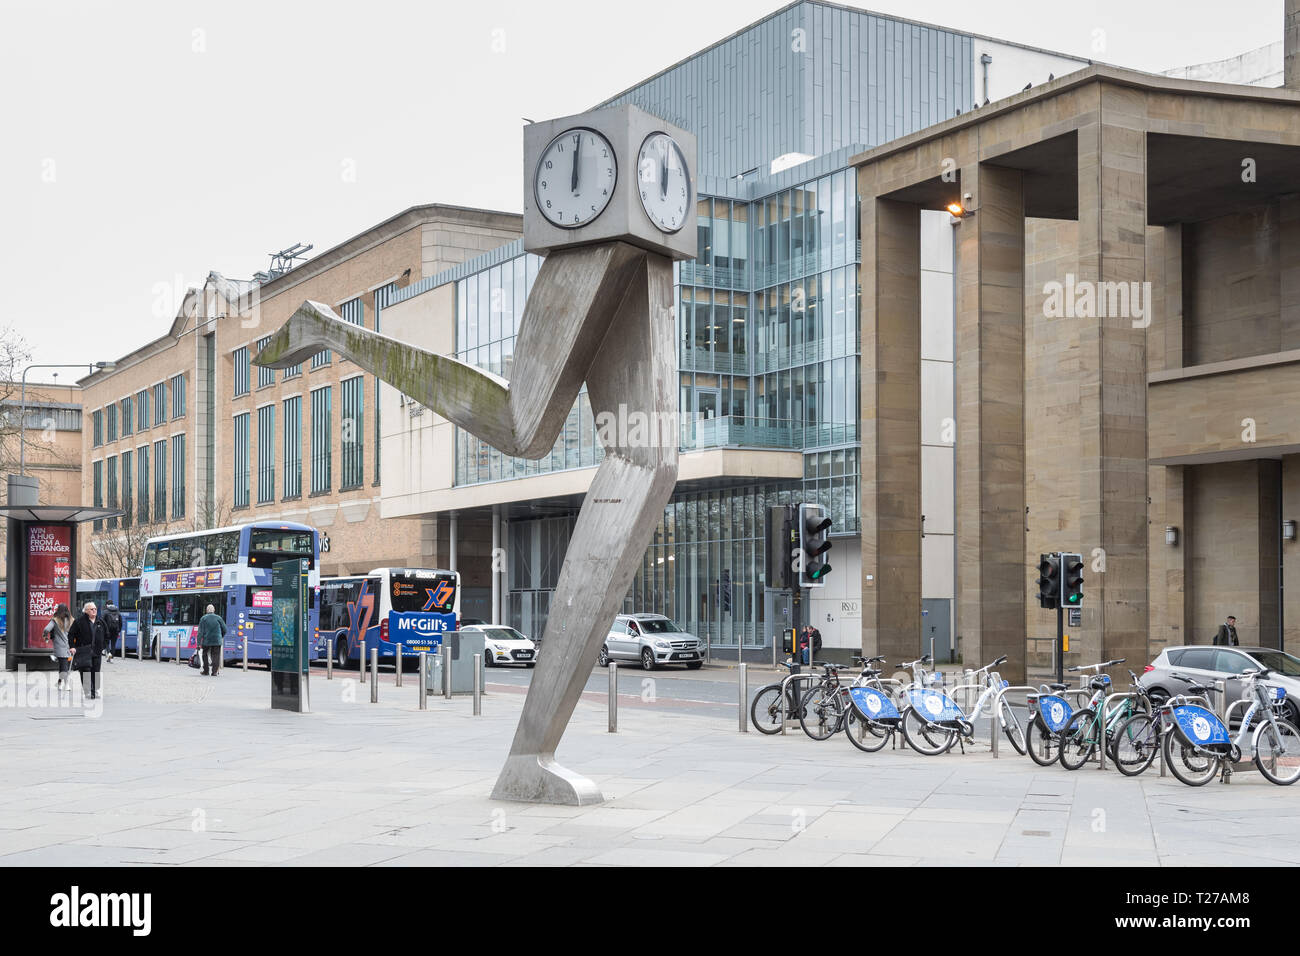 The Clyde Clock, Killermont Street, Glasgow, Scotland, UK Stock Photo